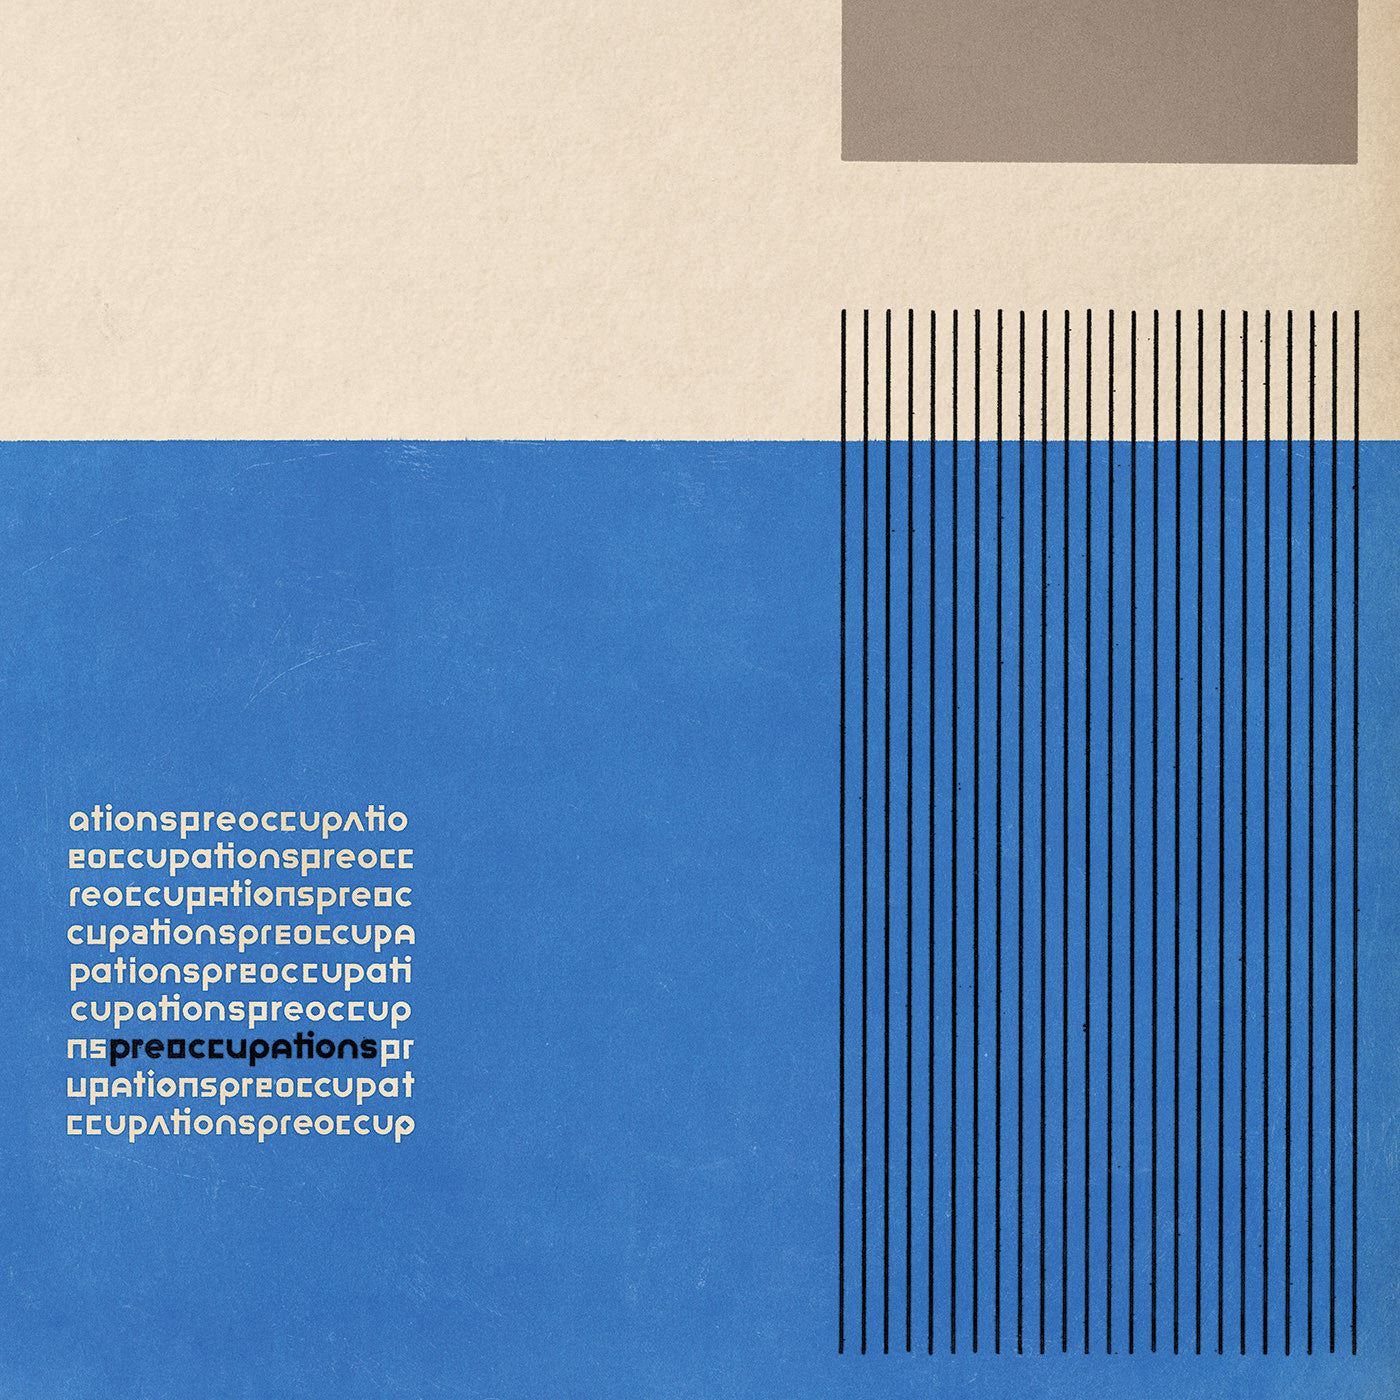 Preoccupations ‎(Viet Cong) – Preoccupations - New Lp Record 2016 USA Jagjaguwar Black Vinyl & Download - Post-Punk